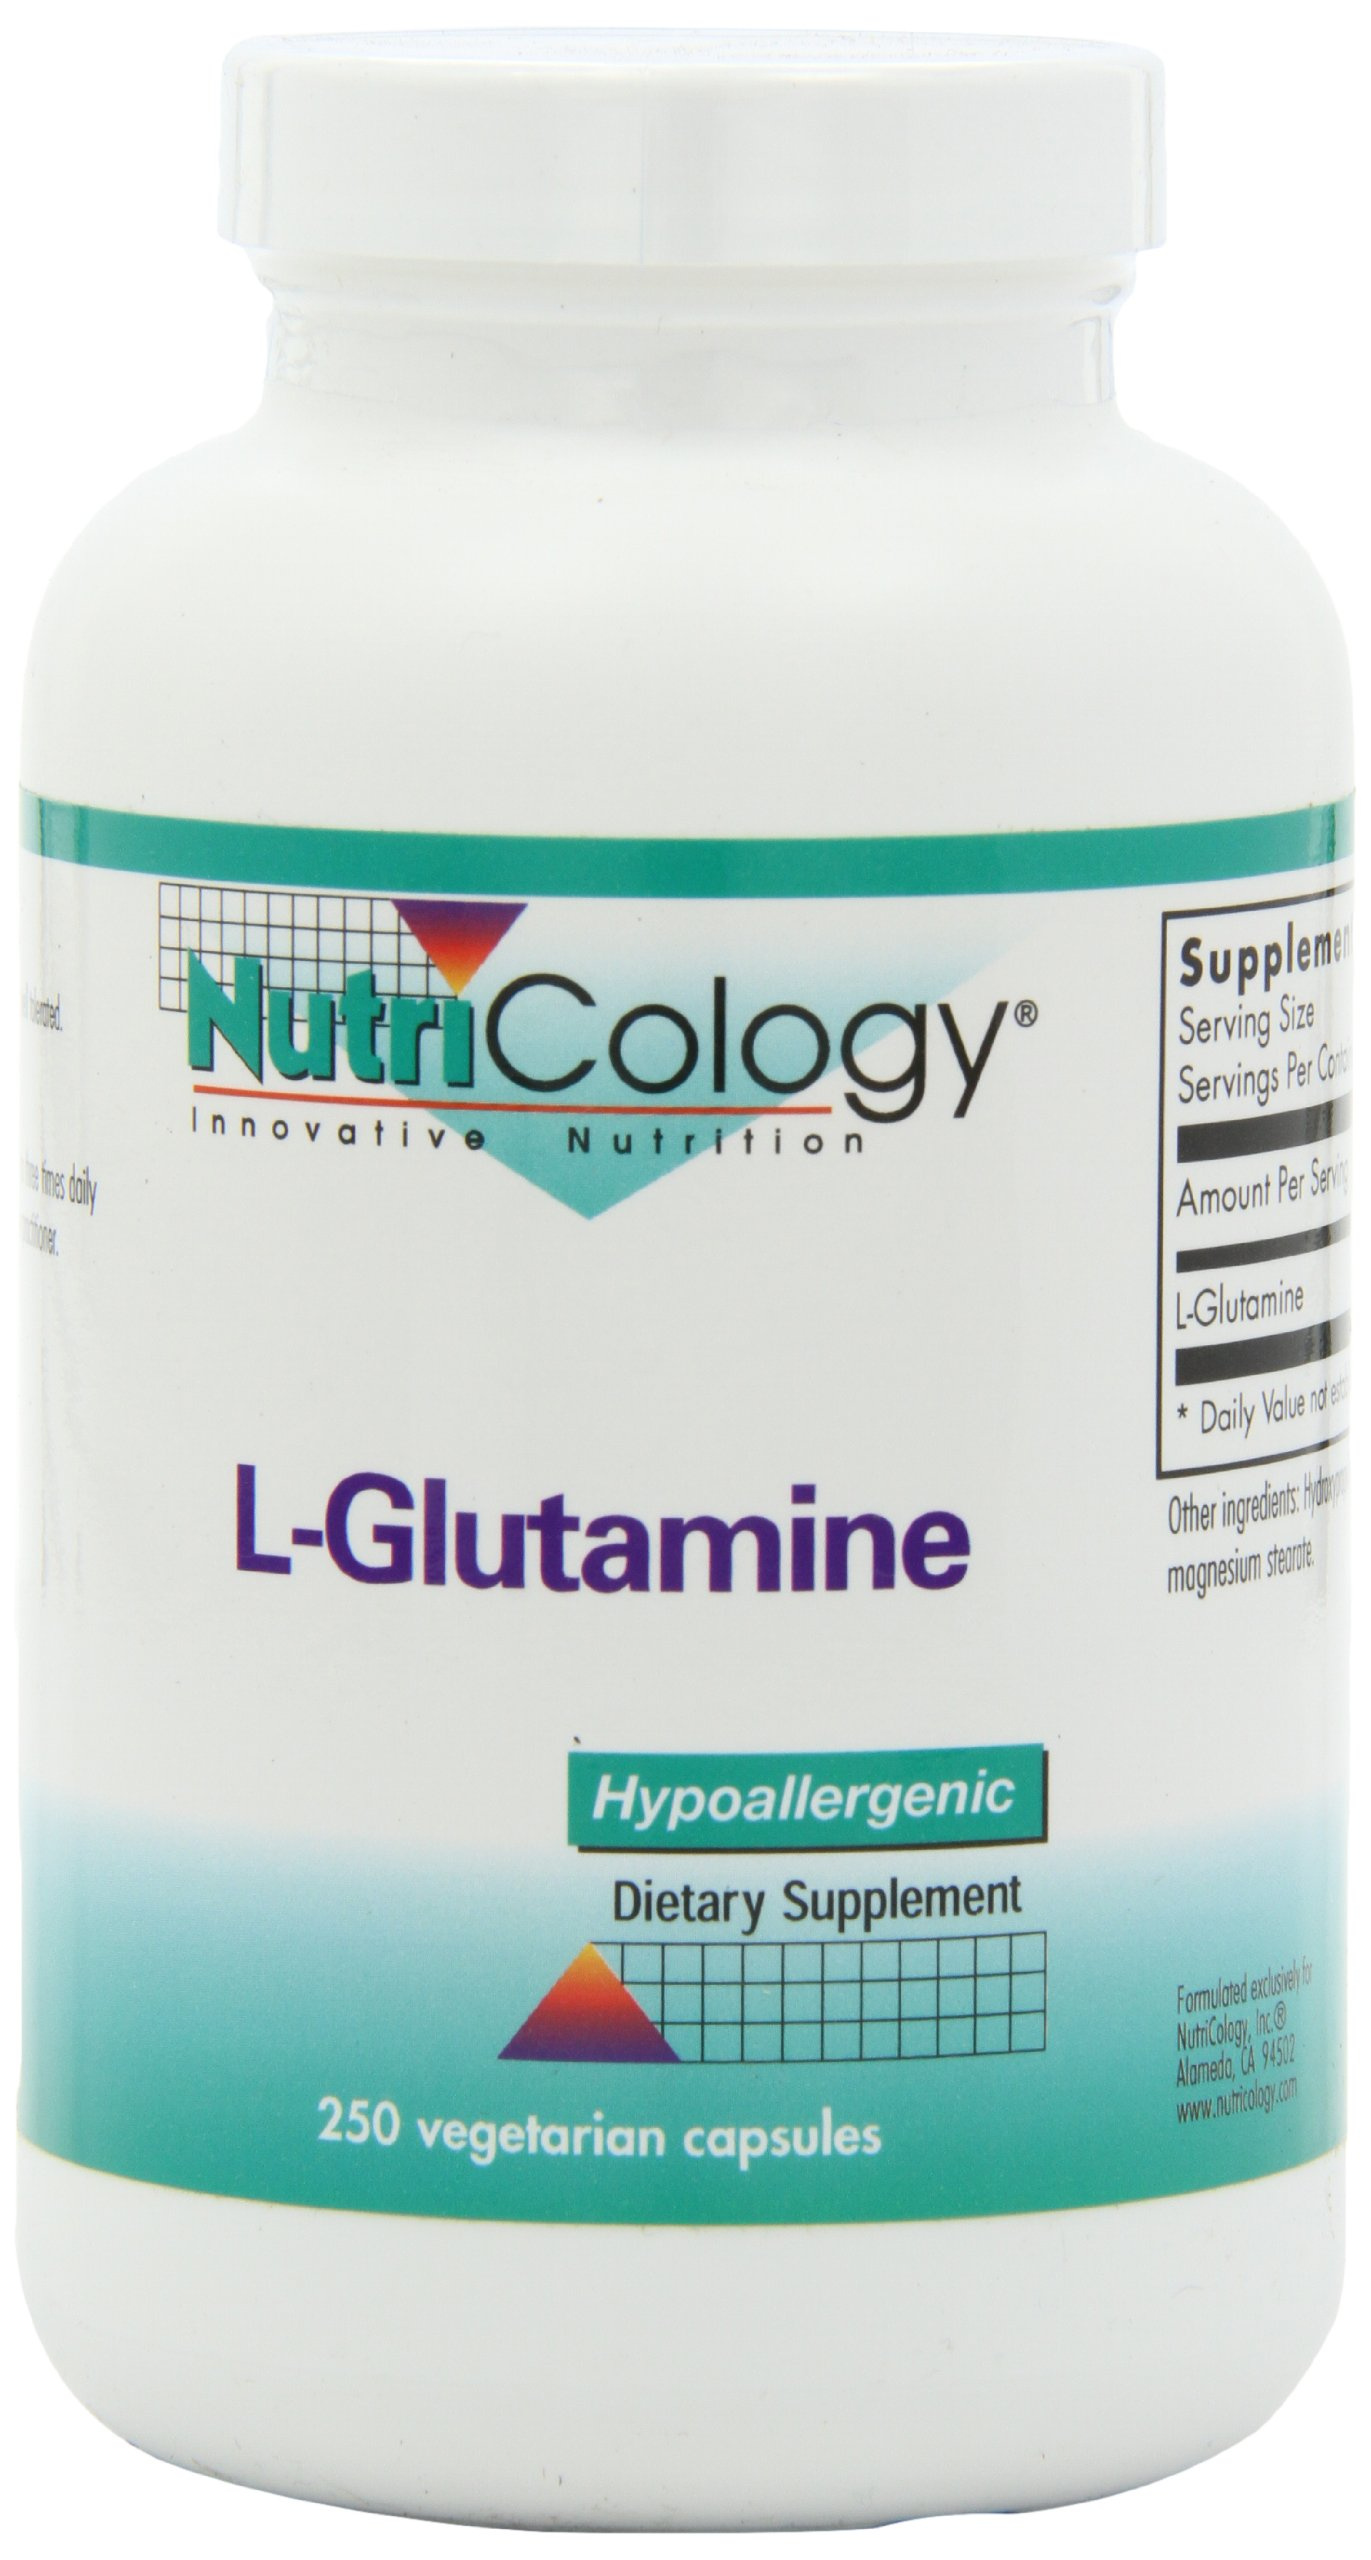 Nutricology L-glutamine, 800 Mg, Vegicaps, 250-Count